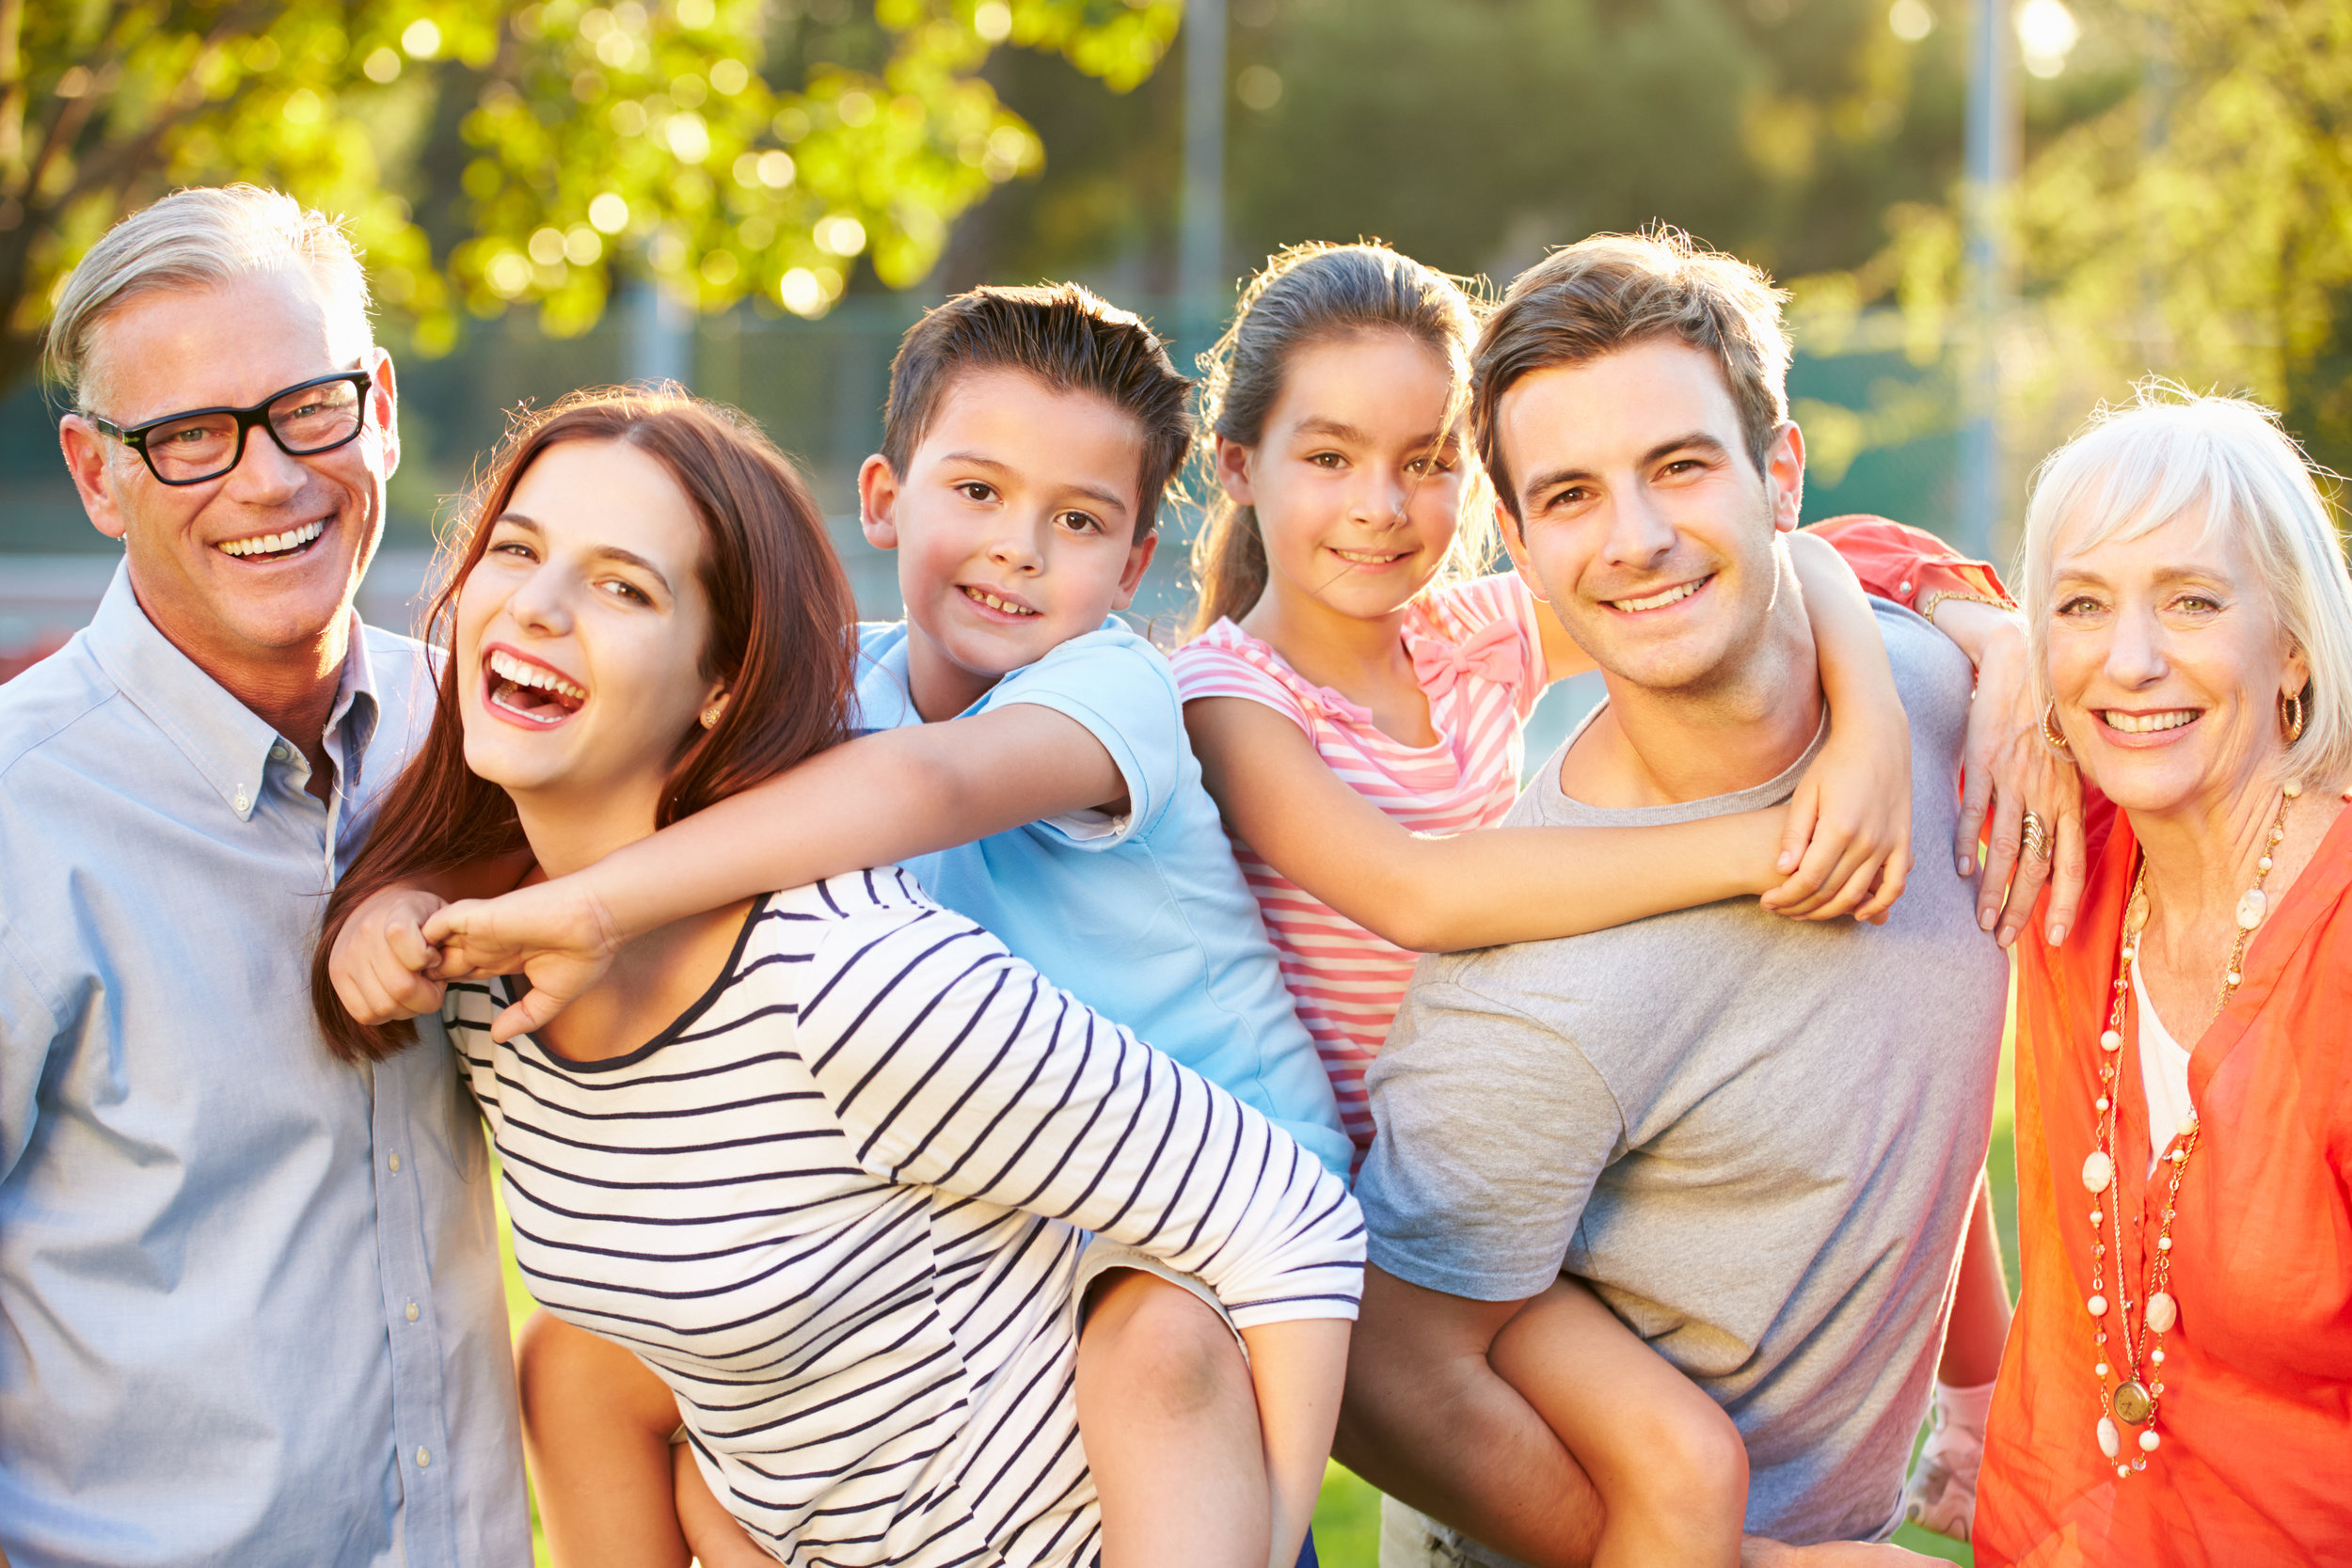 Chiropractic care benefits the whole family at their different stages of life. Our practice welcomes everyone!